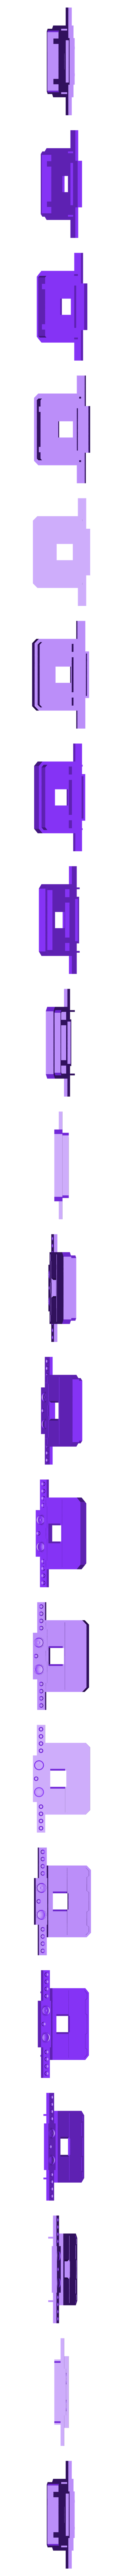 Front_twitch.stl Download free STL file Twitch Drone Chassis for ZeroBot • 3D printable template, MaxMKA